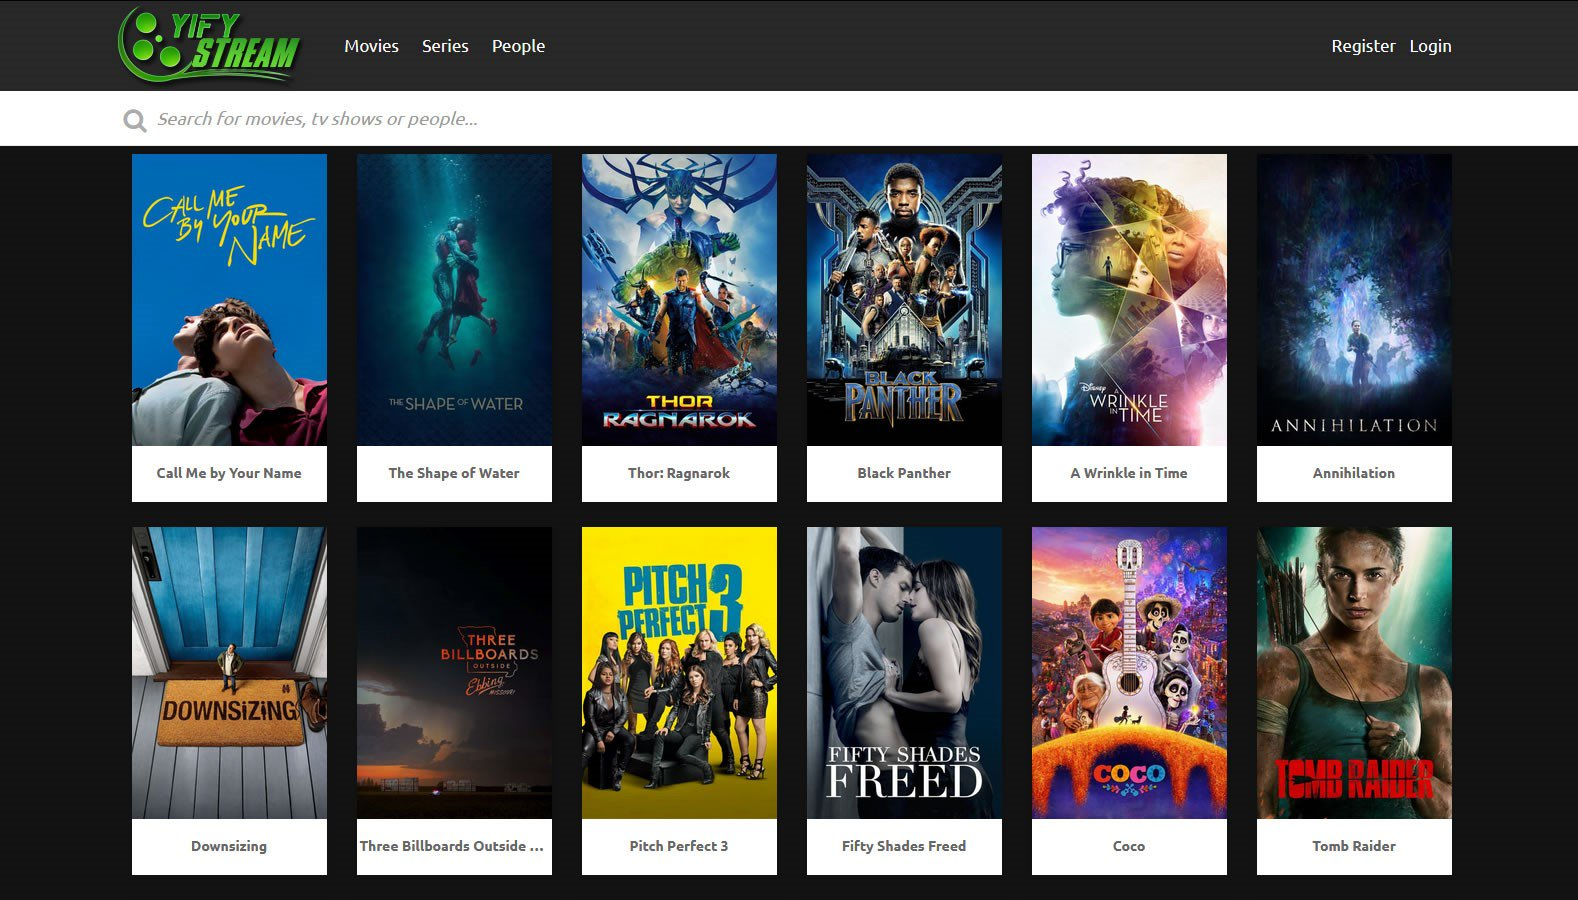 HD MOVIES PROXY/MIRROR SITES TO UNBLOCK YIFY